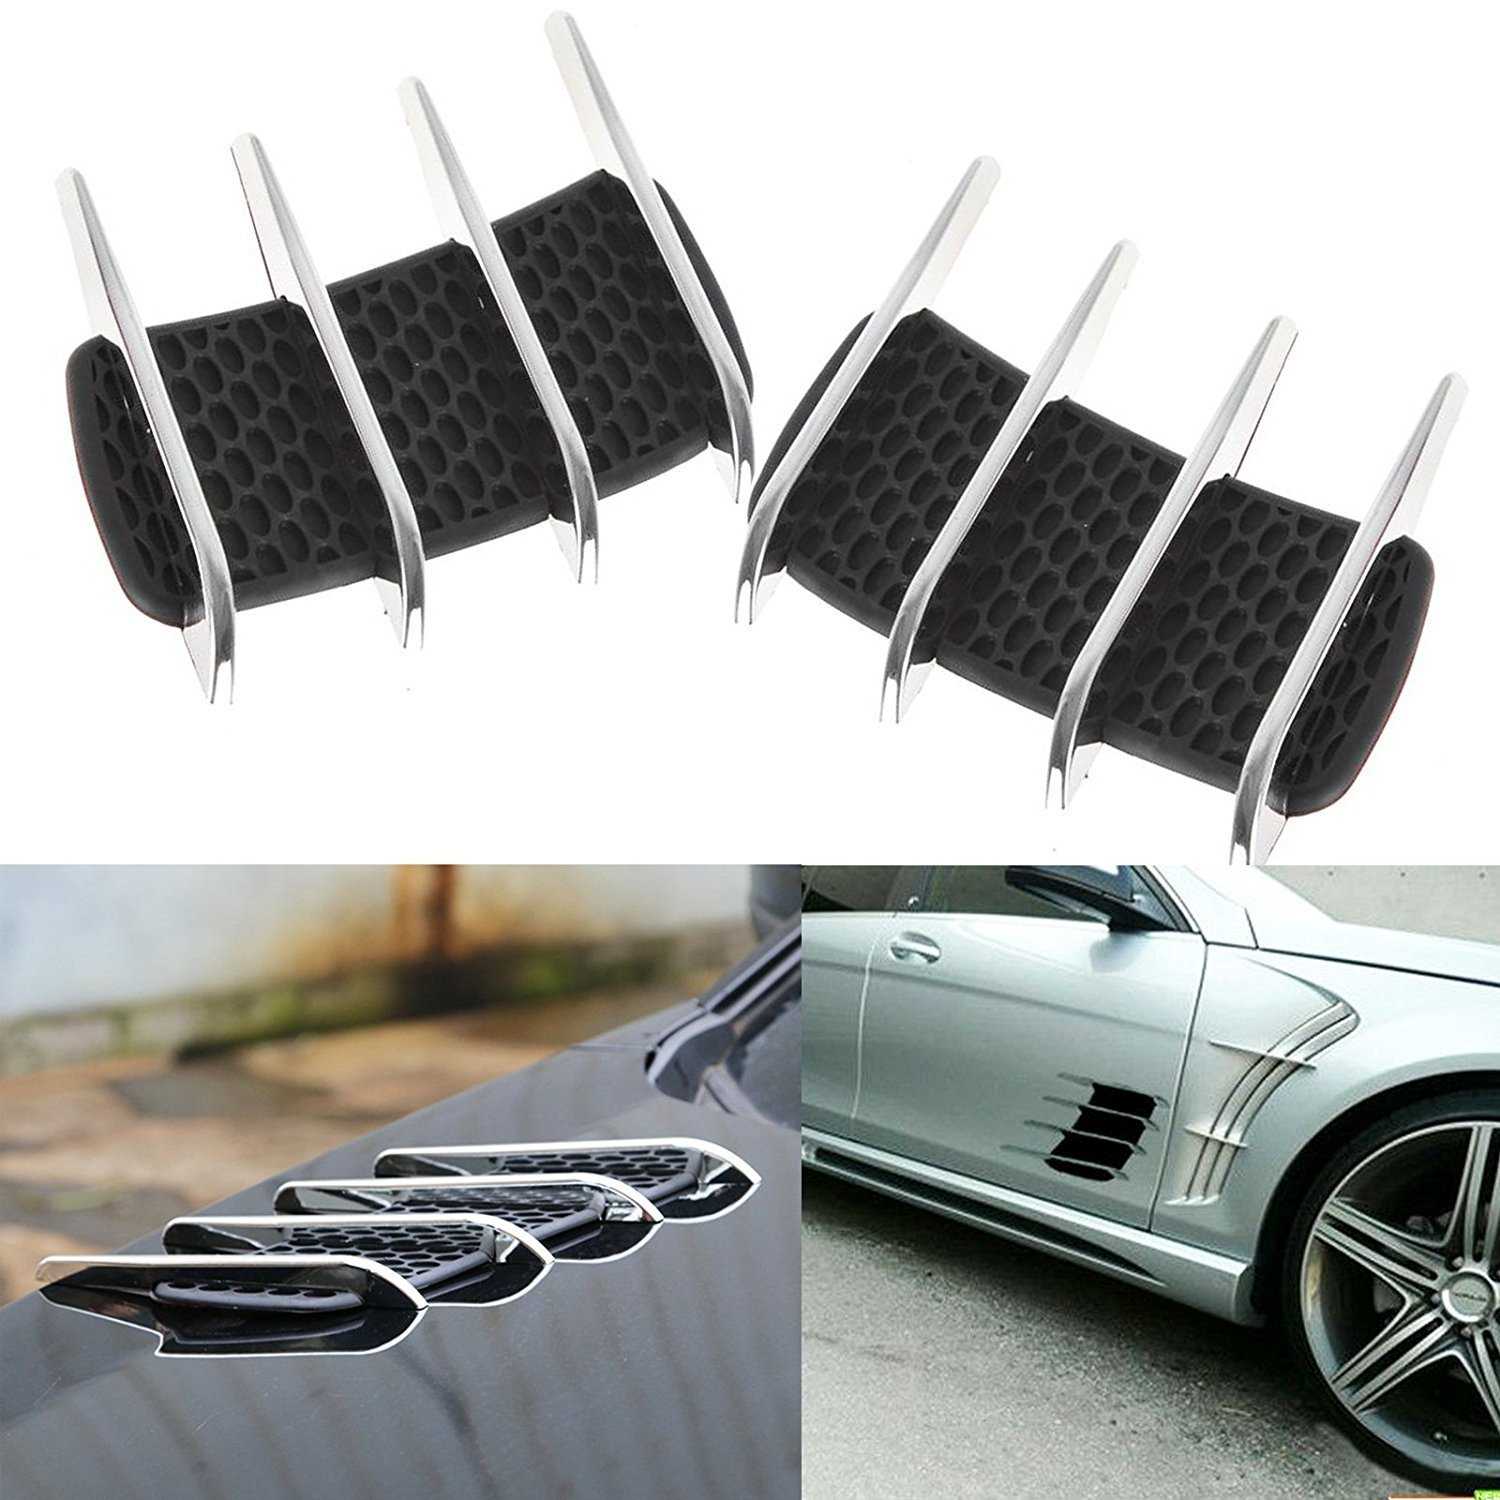 ZYHW 2Pcs Universal Self-adhesive Air Flow Vent Fender Side Decor Sticker Durable for Car